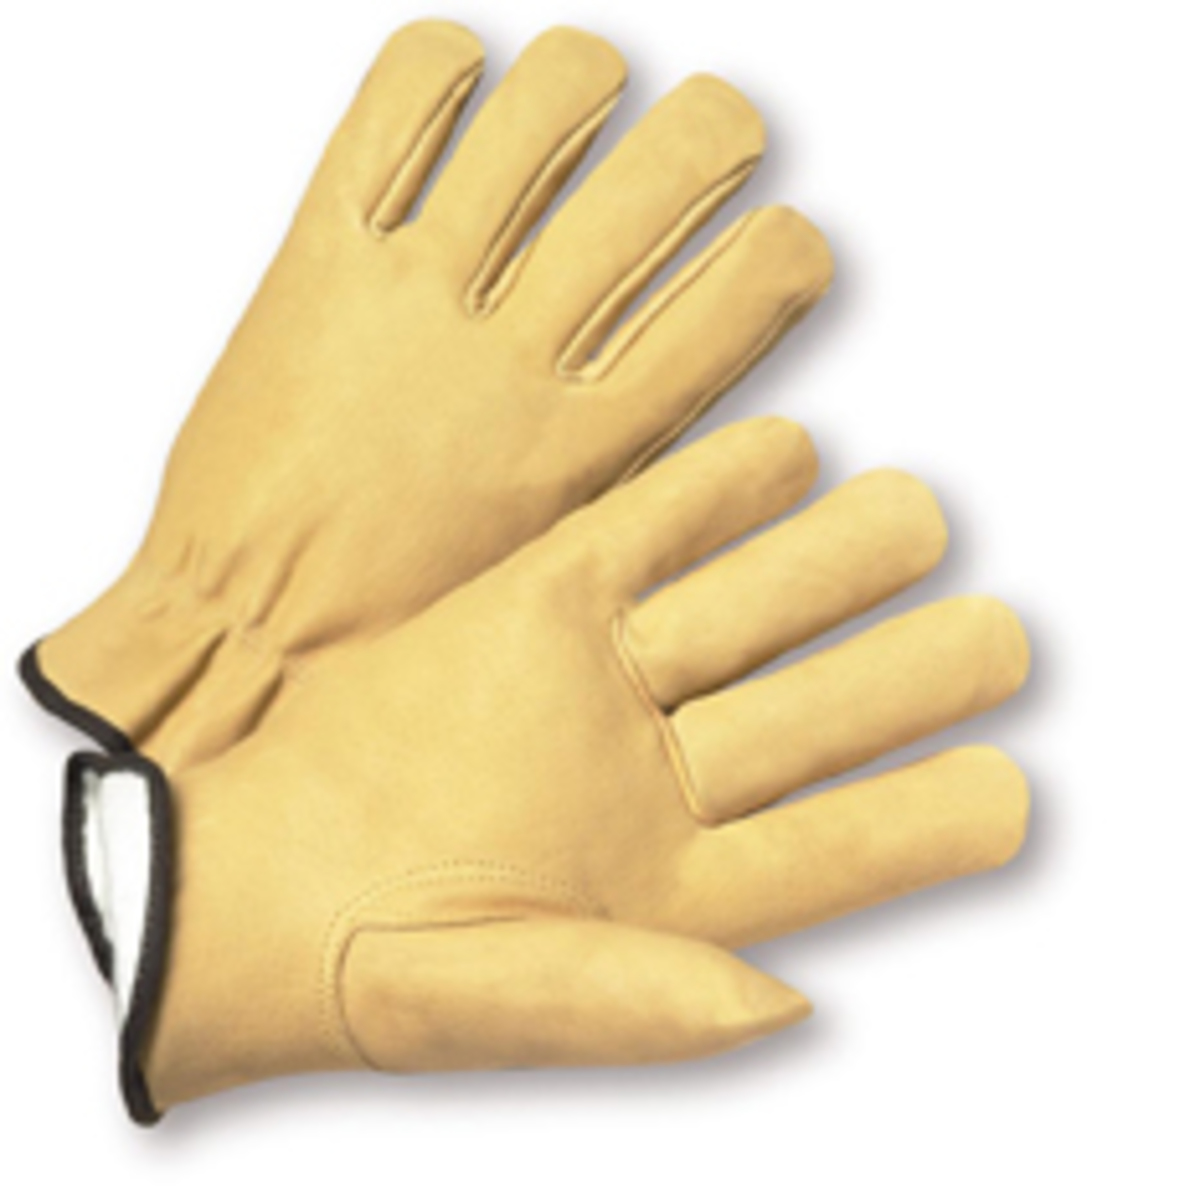 Thinsulate leather driving gloves - West Chester 2x Tan Premium Grain Pigskin Thinsulate Lined Gunn Cut Drivers Cold Weather Gloves